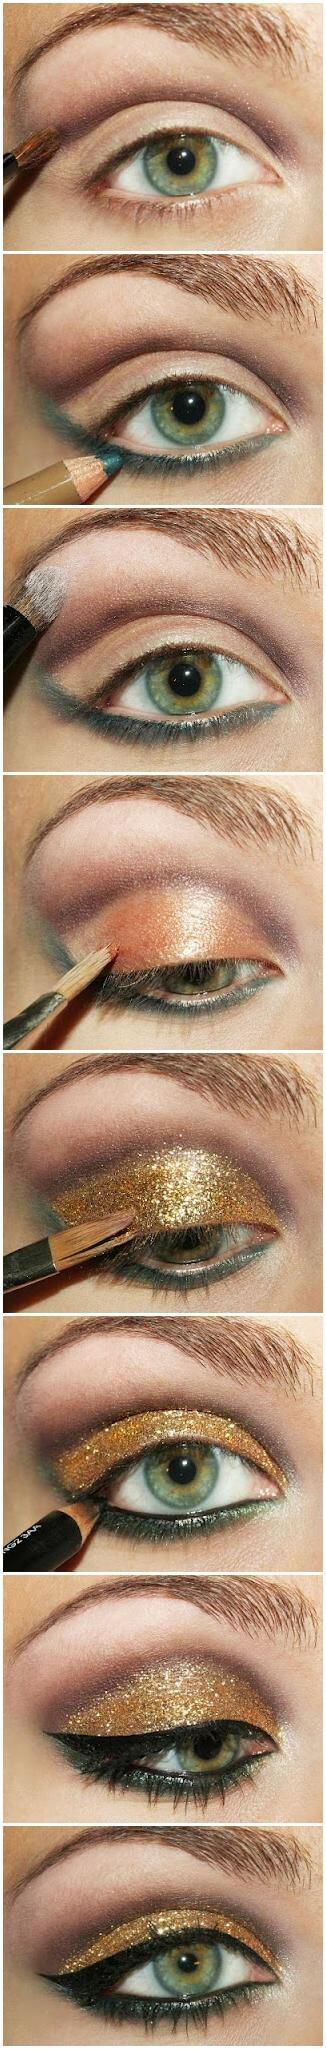 Create this vibrant look using three colors: gold, brown and green.